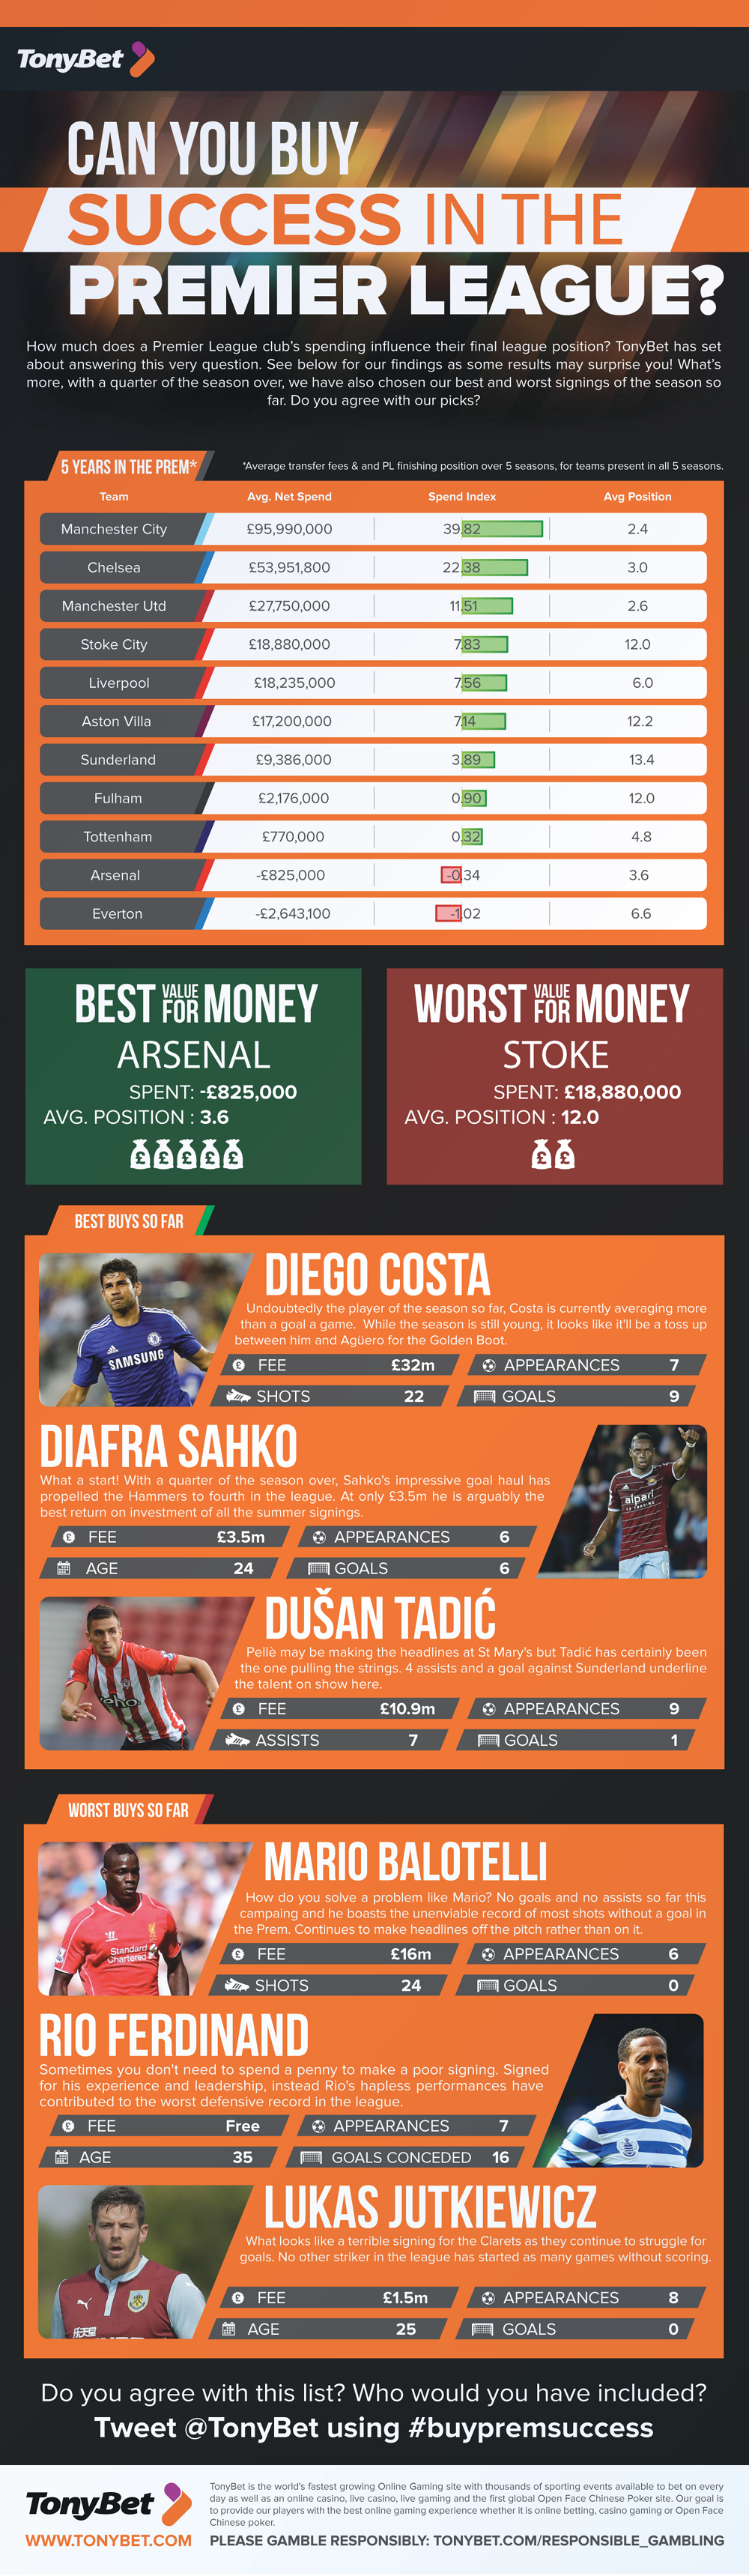 Can you buy success in the Premier League?